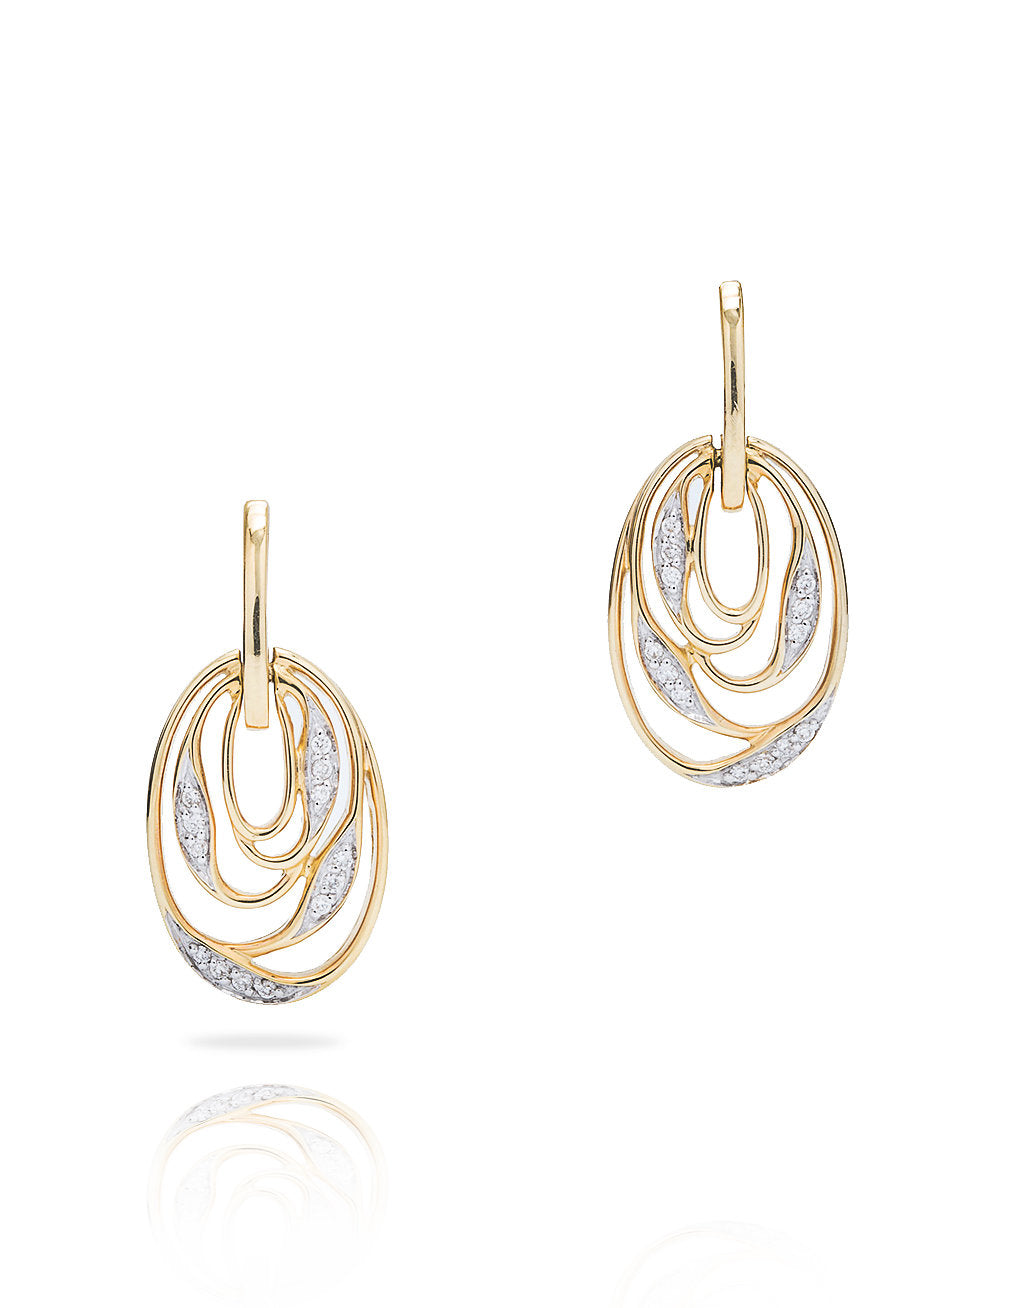 Wrapped Vine Yellow Gold Earrings - Charles Koll Jewellers